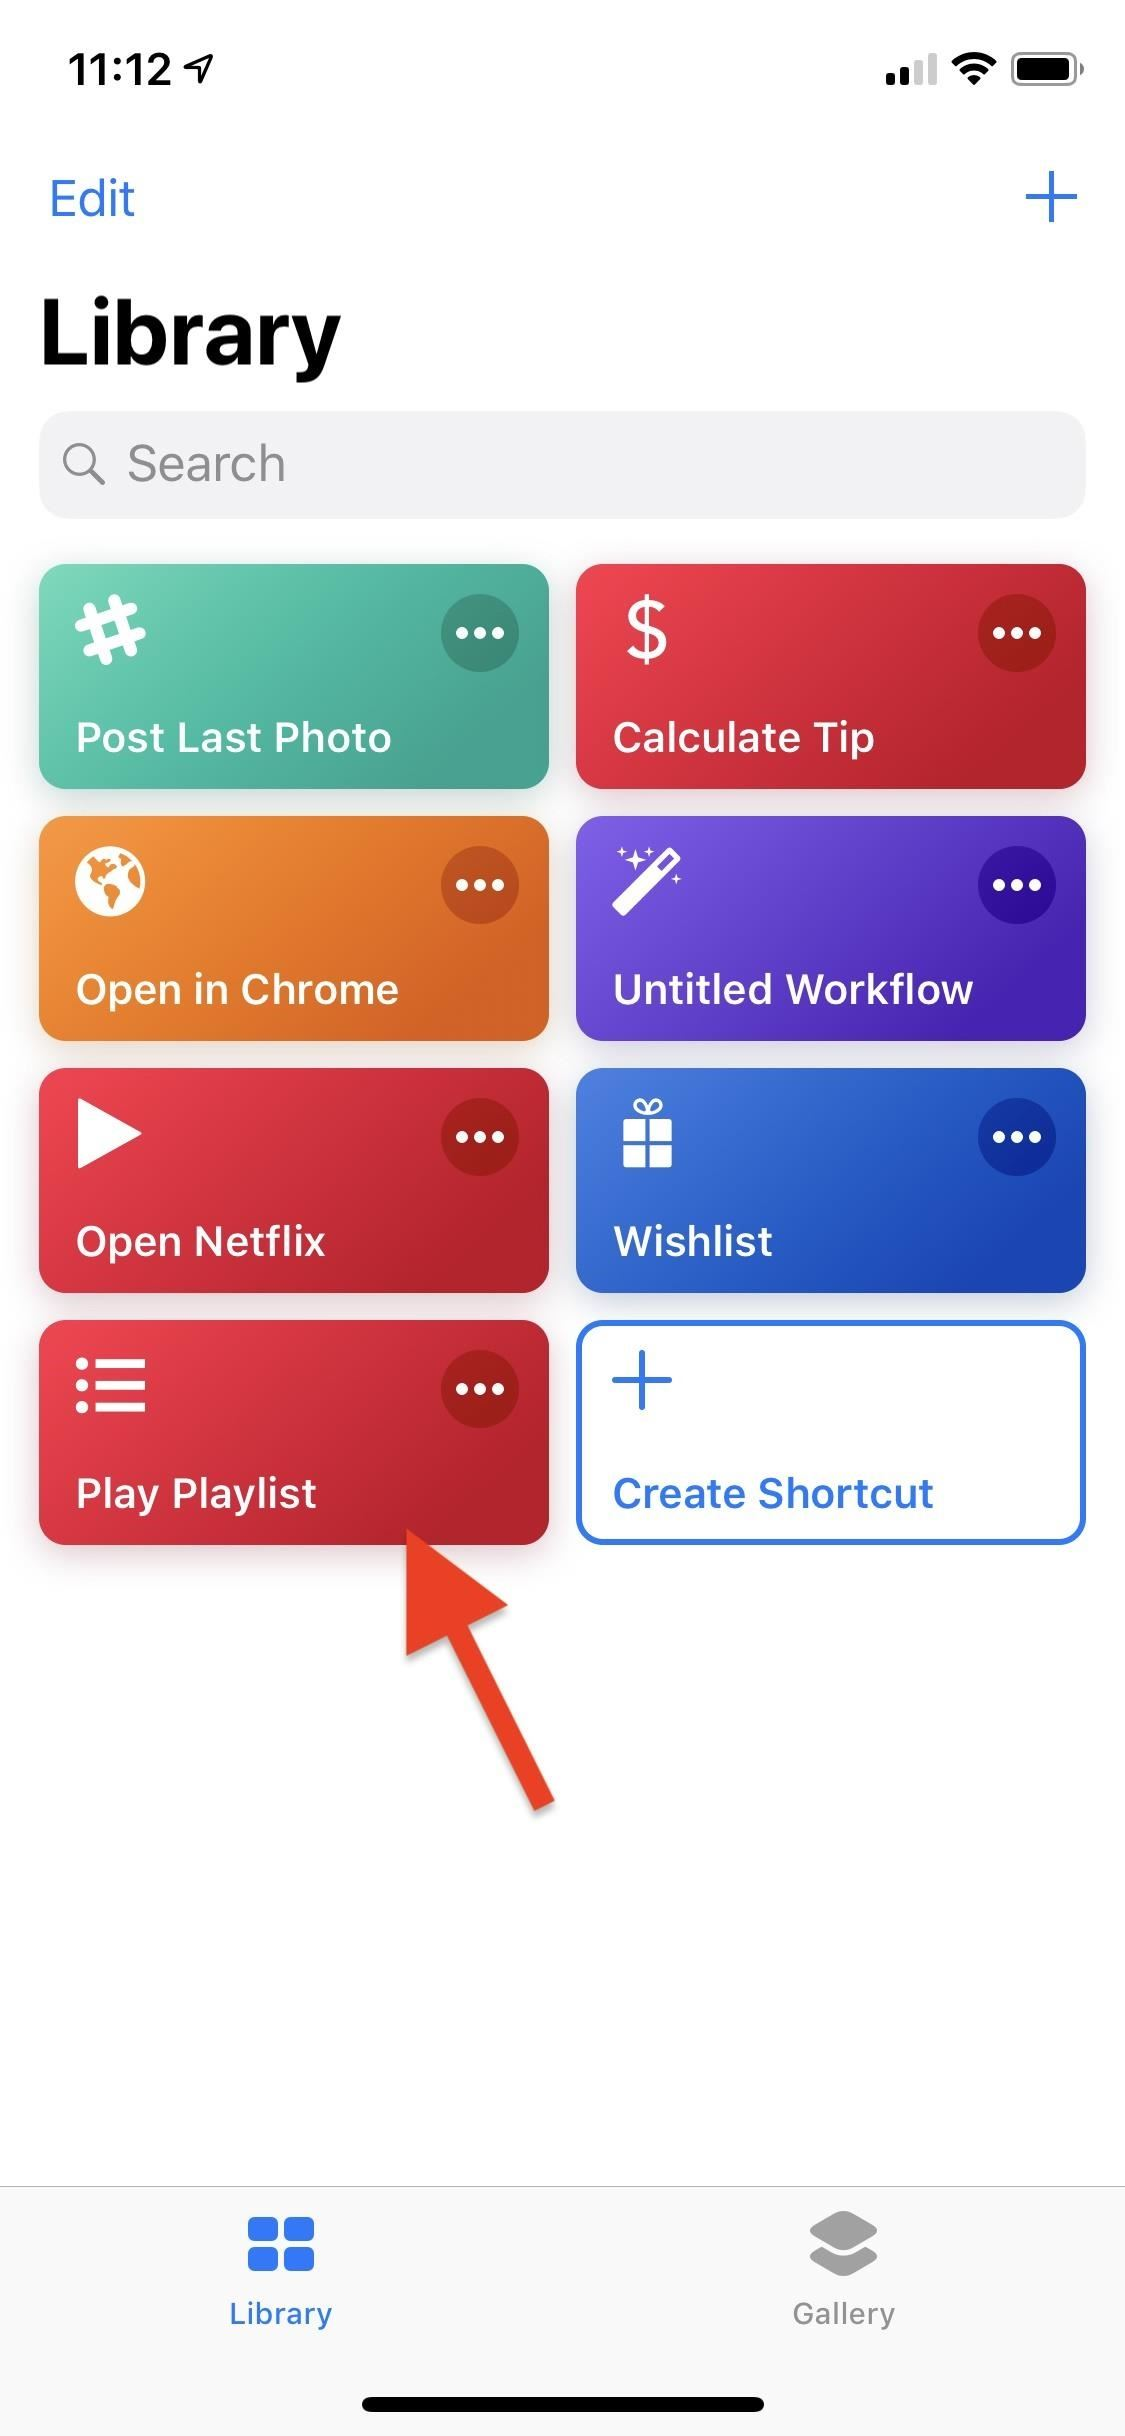 How to use the Shortcuts app on your iPhone in iOS 12 for custom Siri actions and more